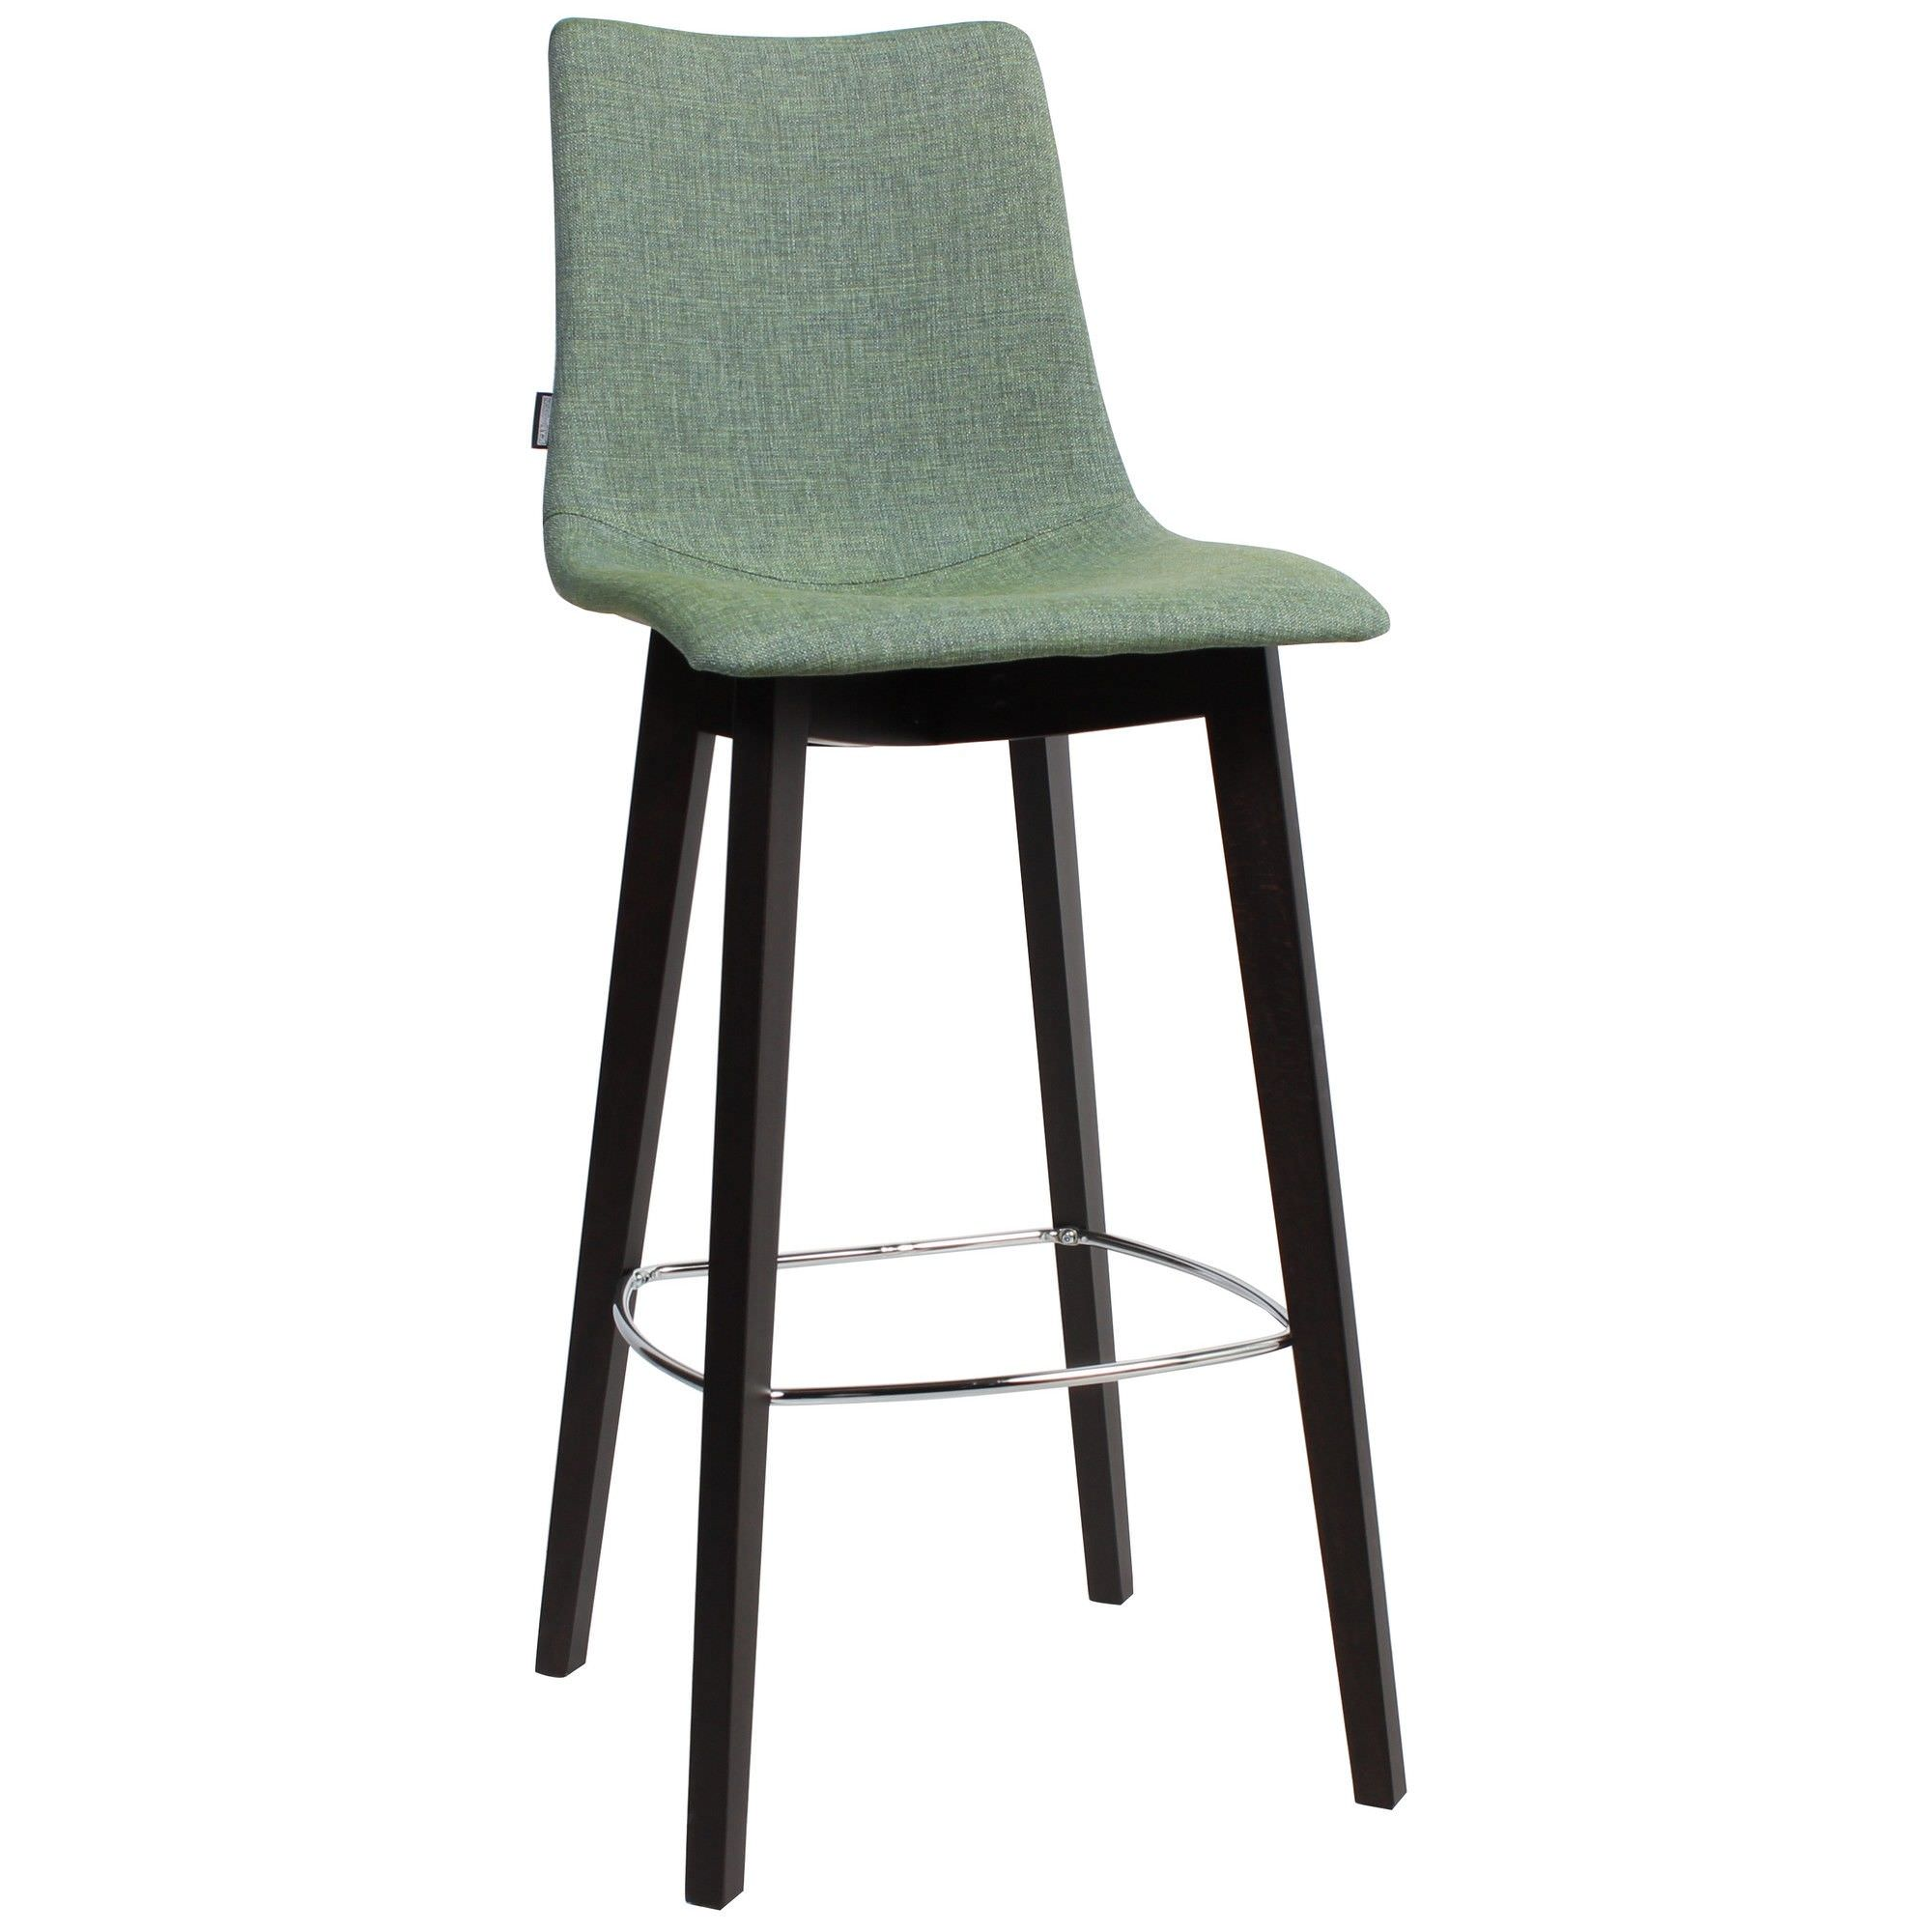 Zebra Pop Italian Made Commercial Grade Fabric Bar Stool, Timber Leg, Jade / Wenge